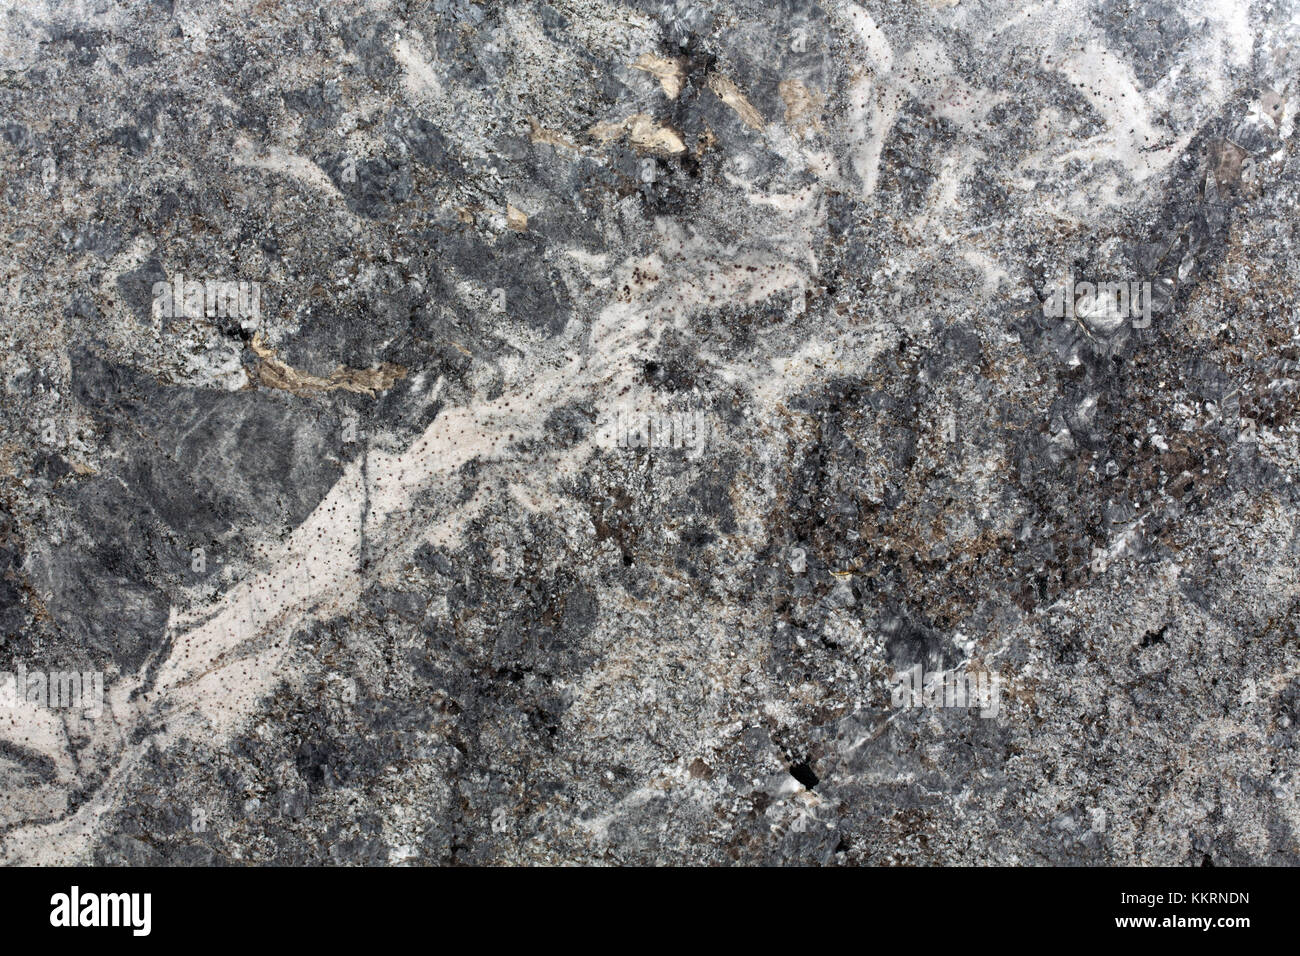 Gray granite stone texture. Natural, solid patterned abstract. - Stock Image